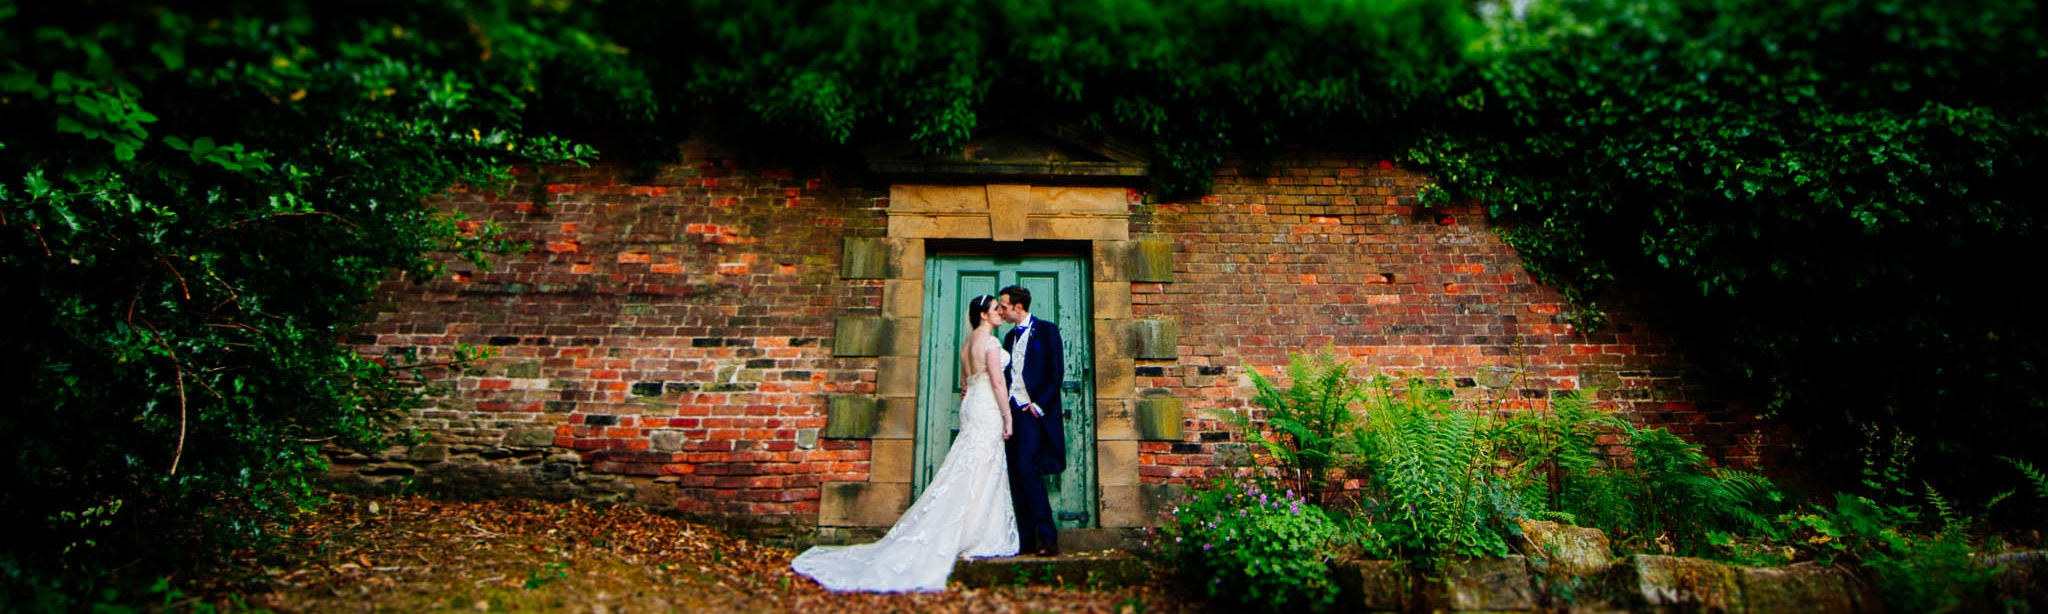 Bride and groom at Wortley Hall